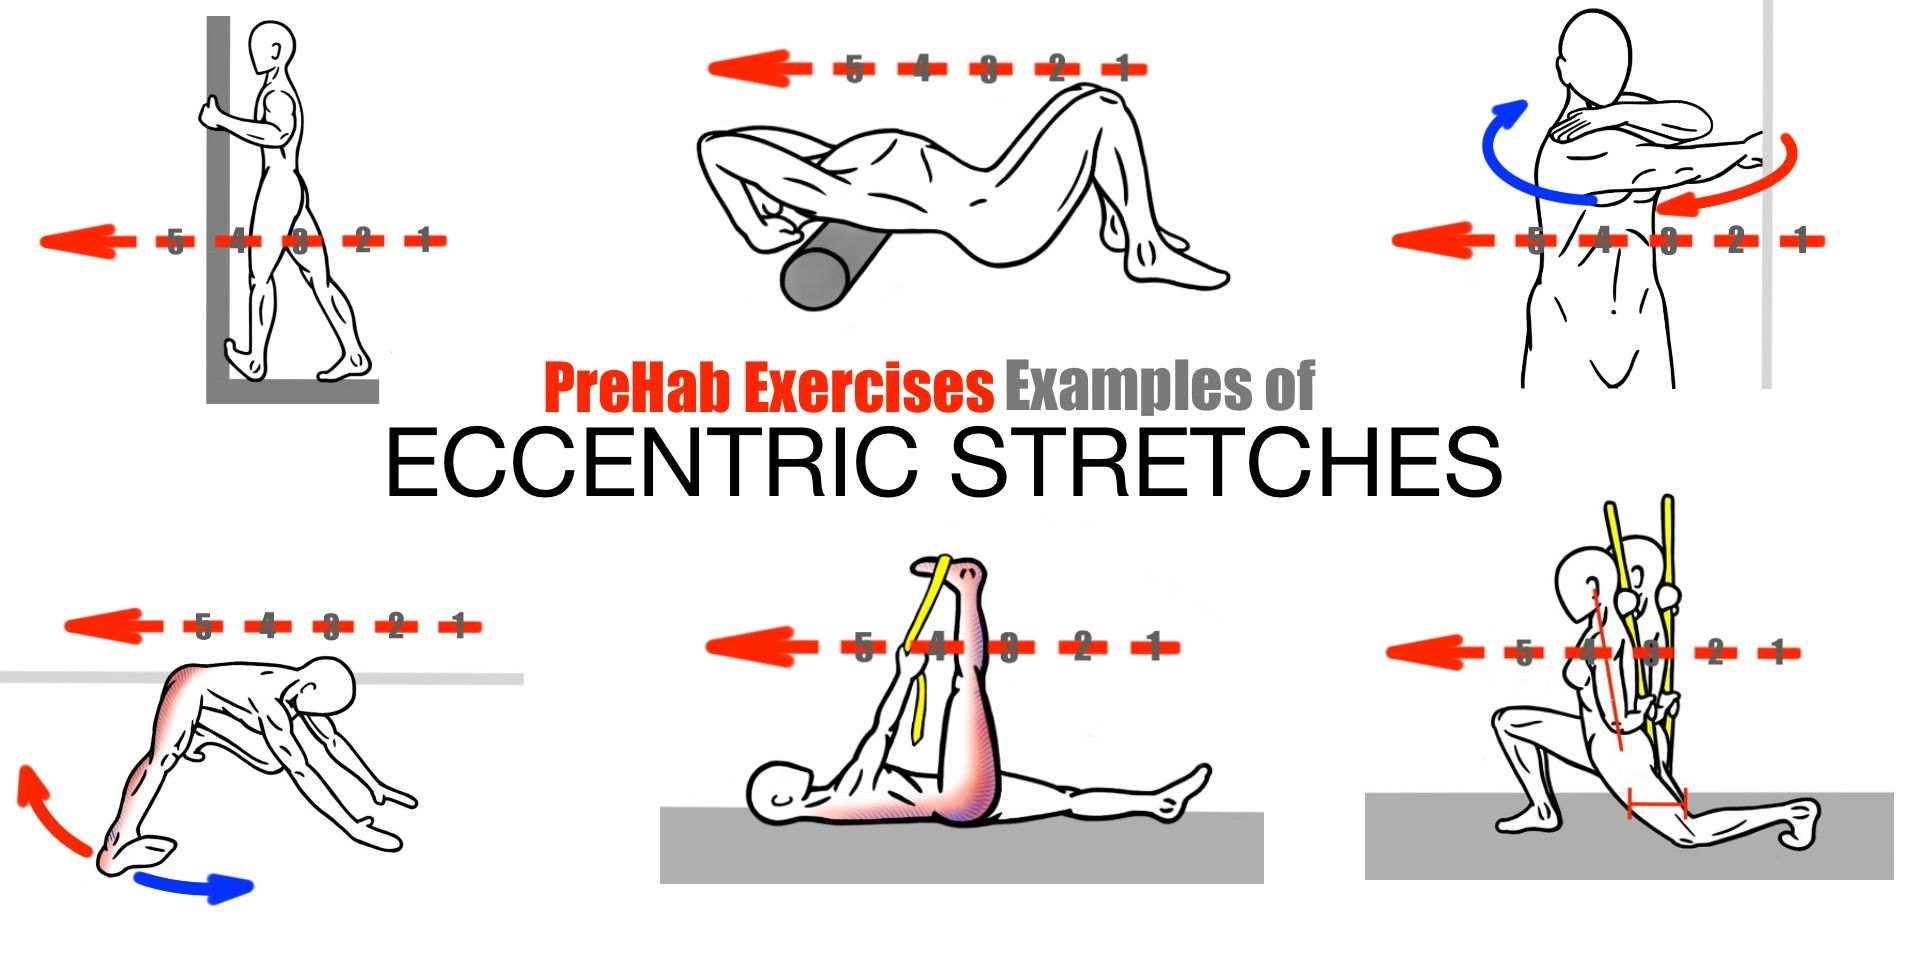 Prehab exercises examples of eccentric stretching eccentric.